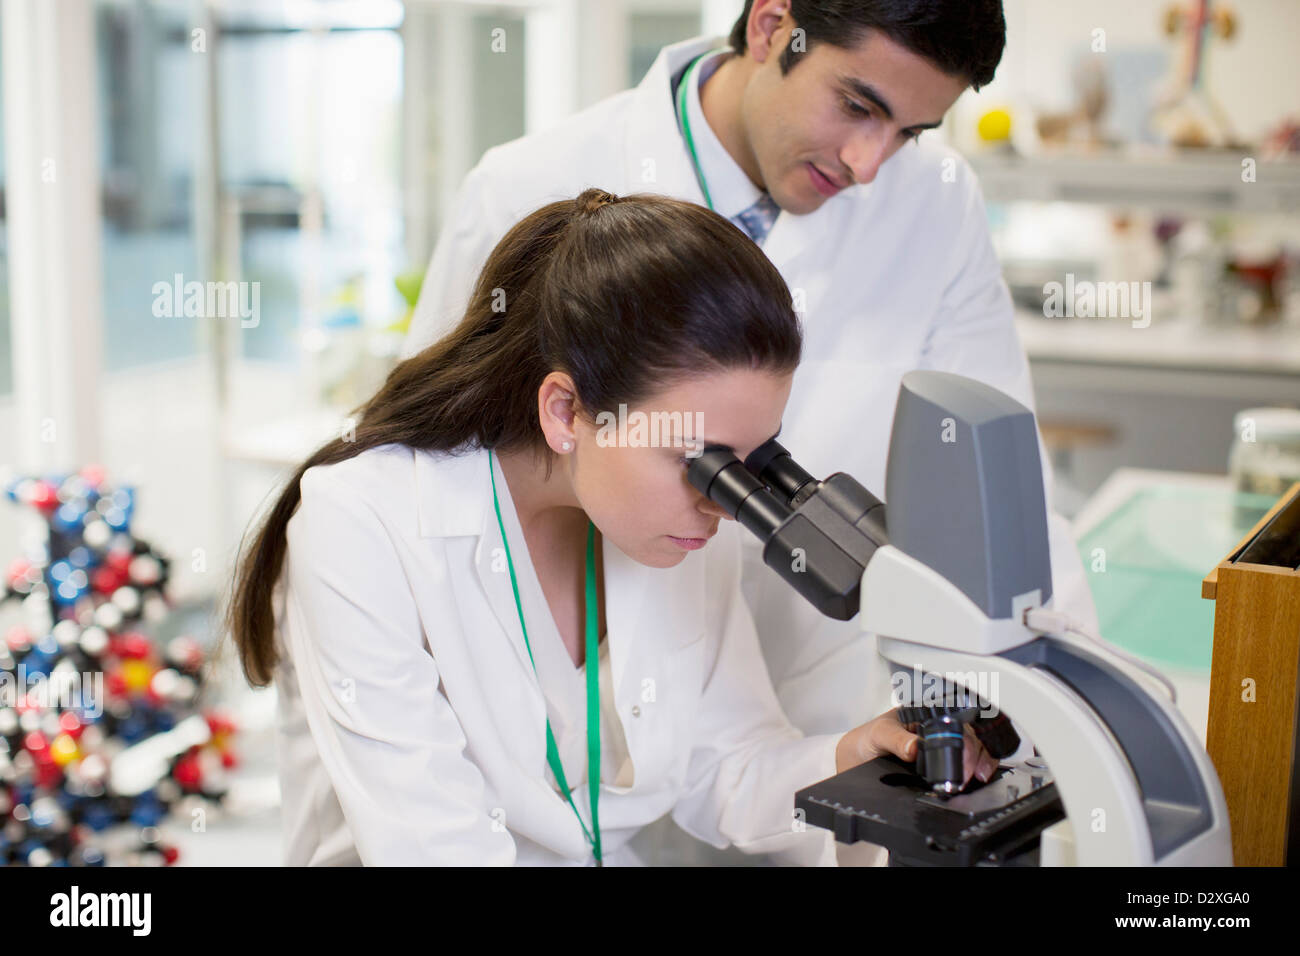 Scientists using microscope in laboratory Photo Stock